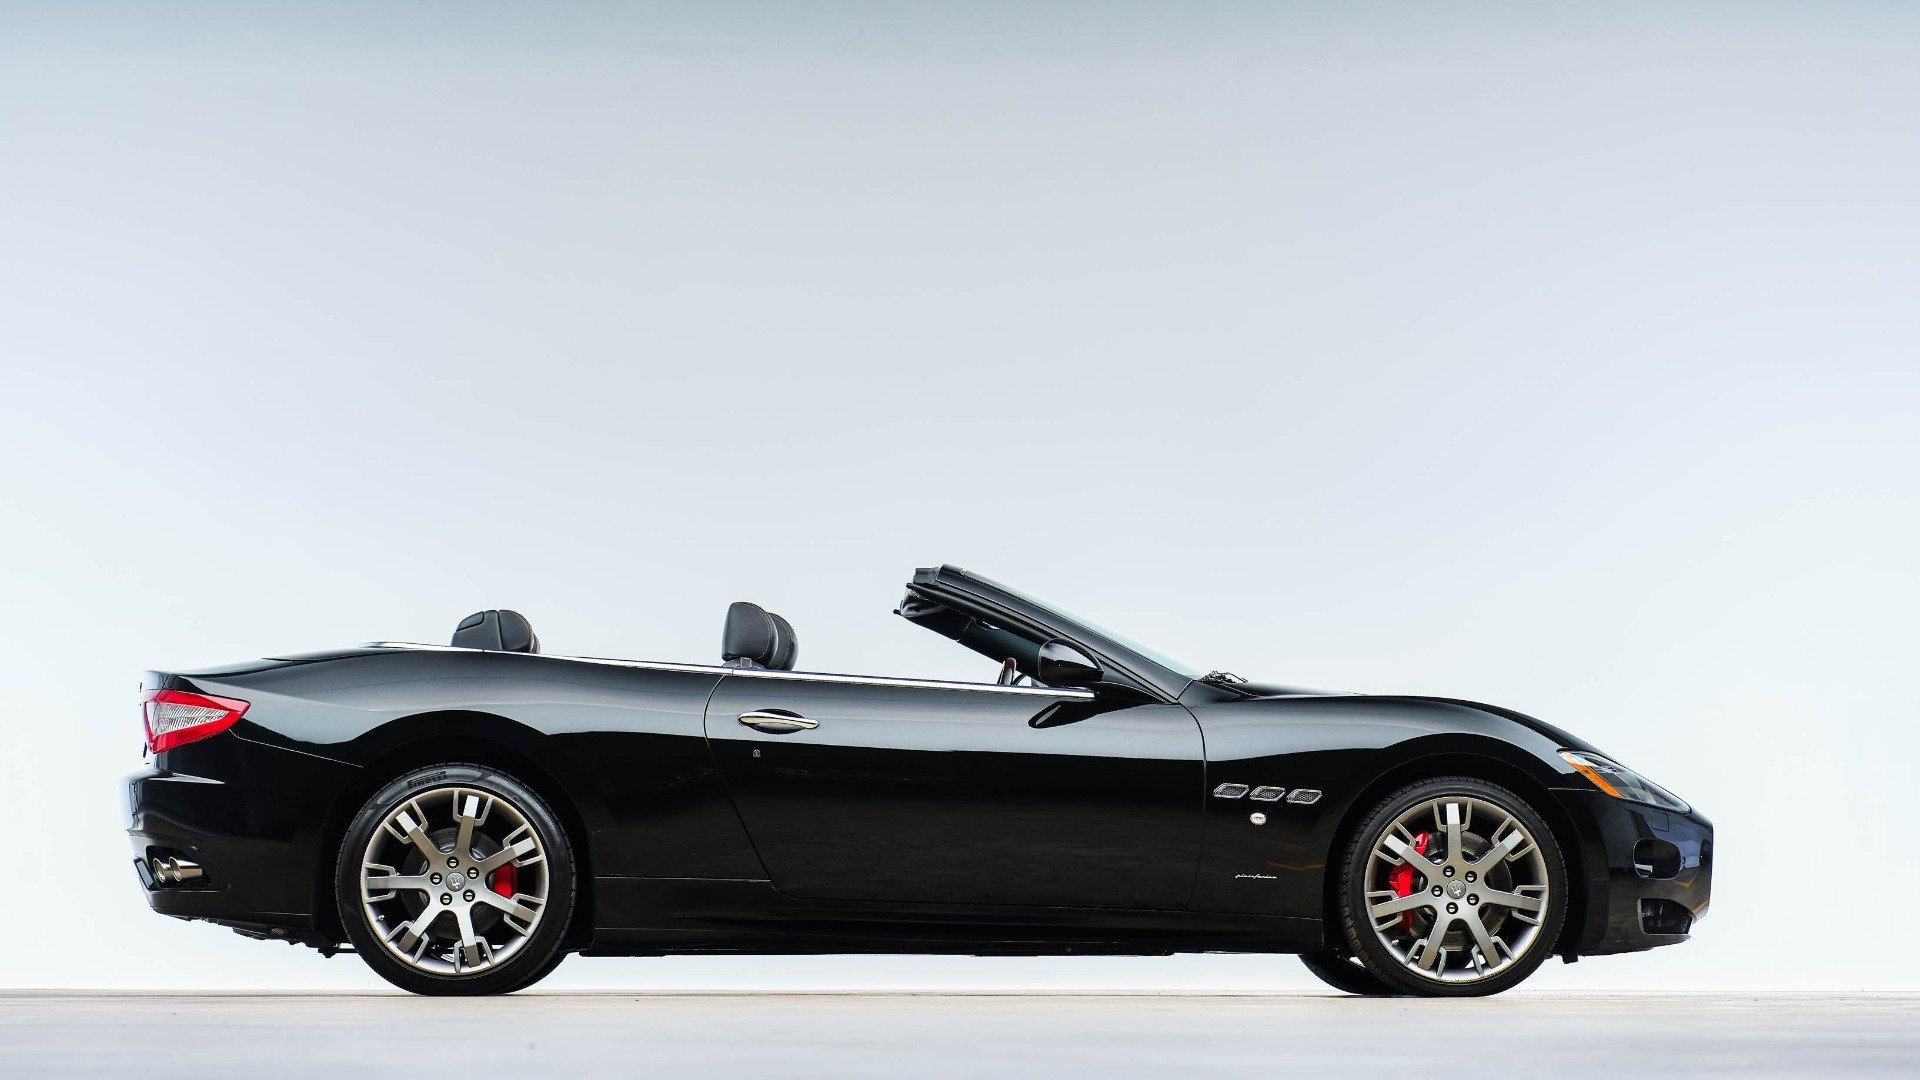 2015 Maserati GranTurismo Convertible 38k miles Black $48.9k For Sale (picture 1 of 12)